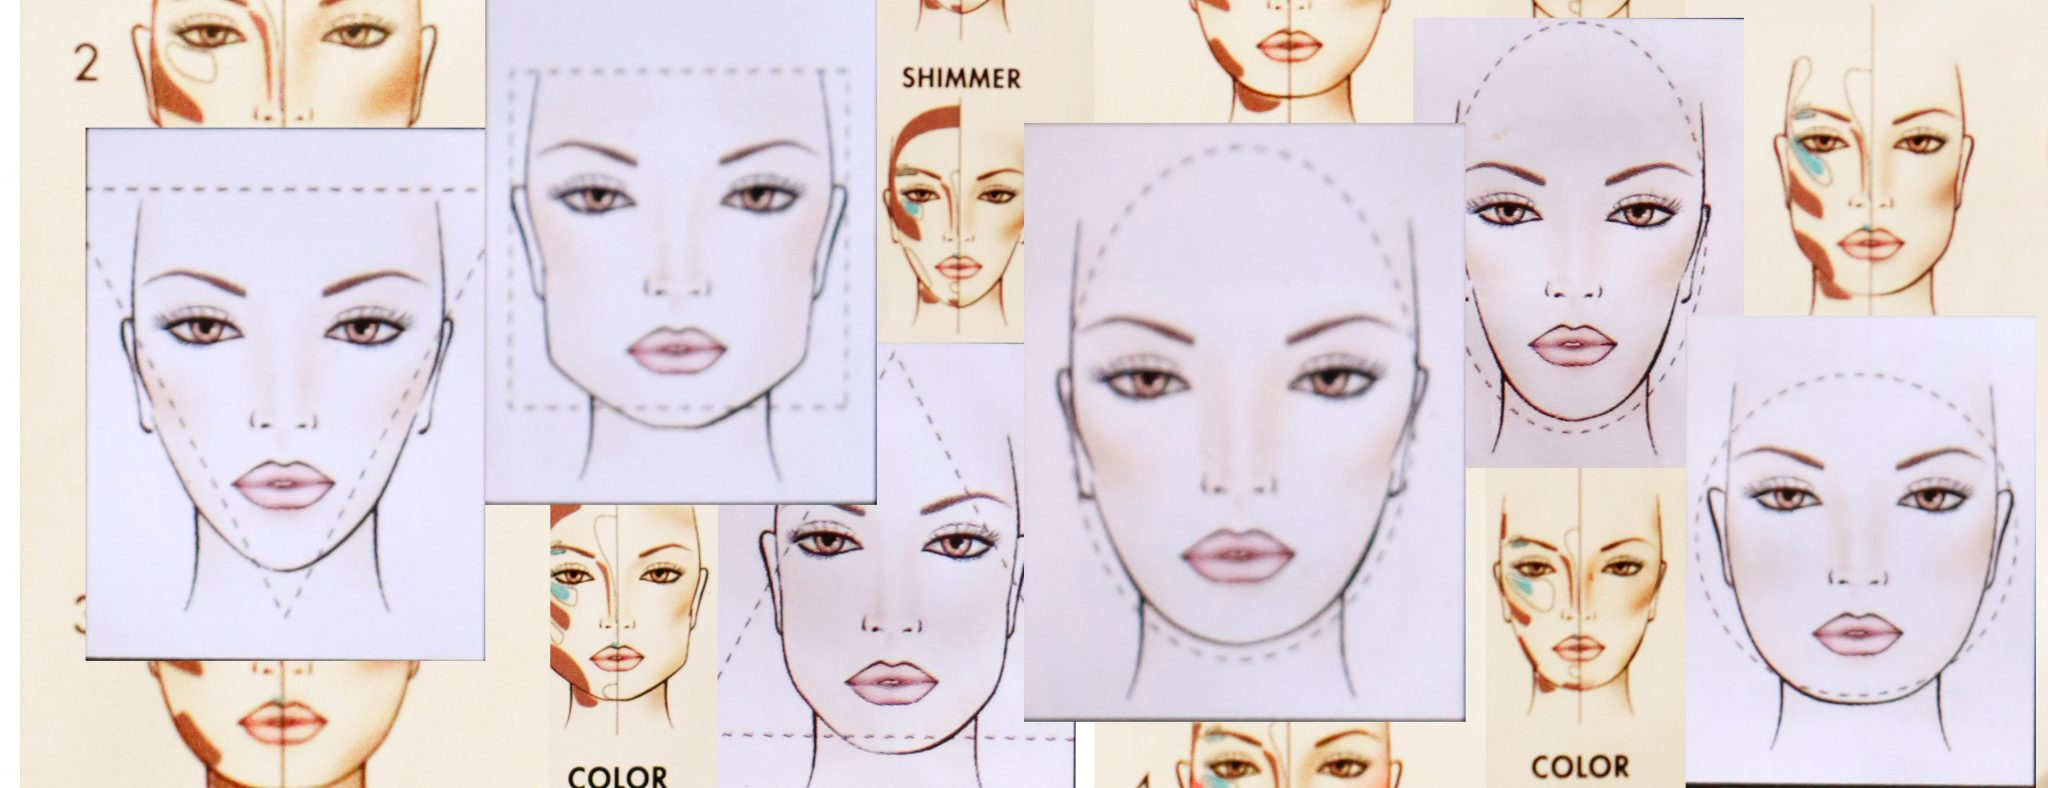 face morphology